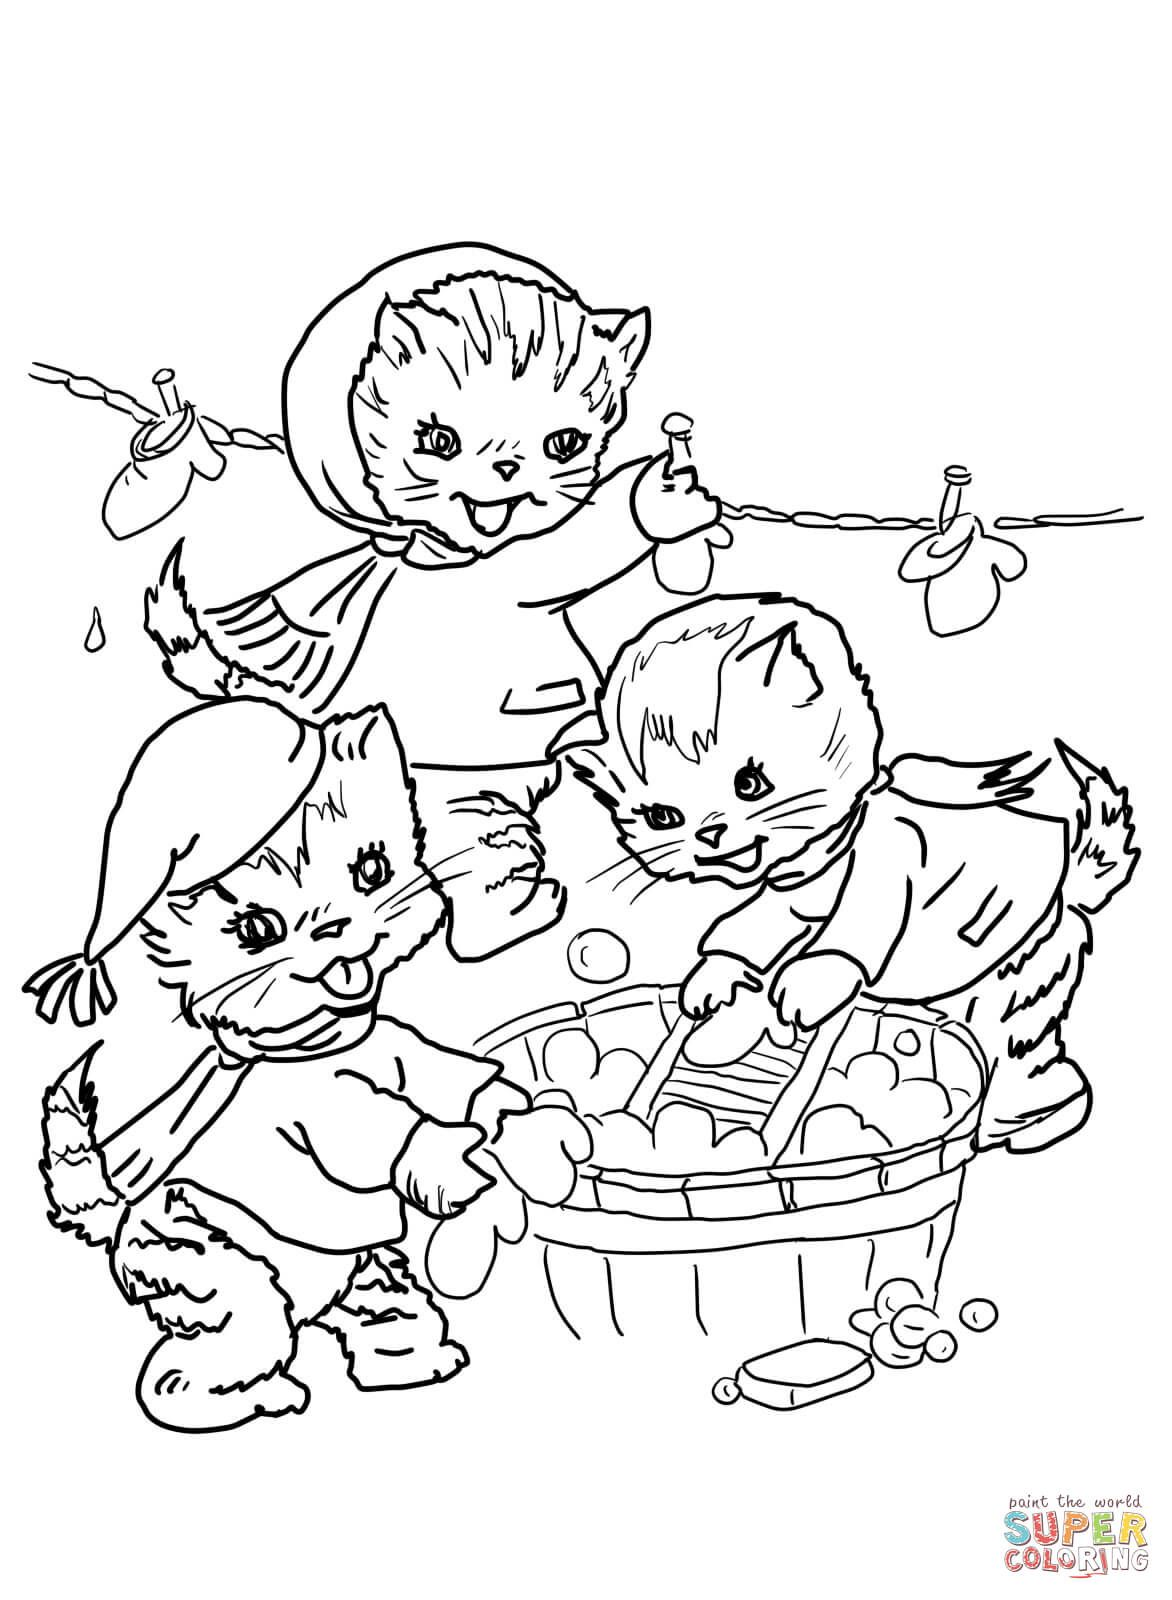 The Three Little Kittens They Washed Their Mittens Super Coloring Kittens Coloring Cat Coloring Page Puppy Coloring Pages